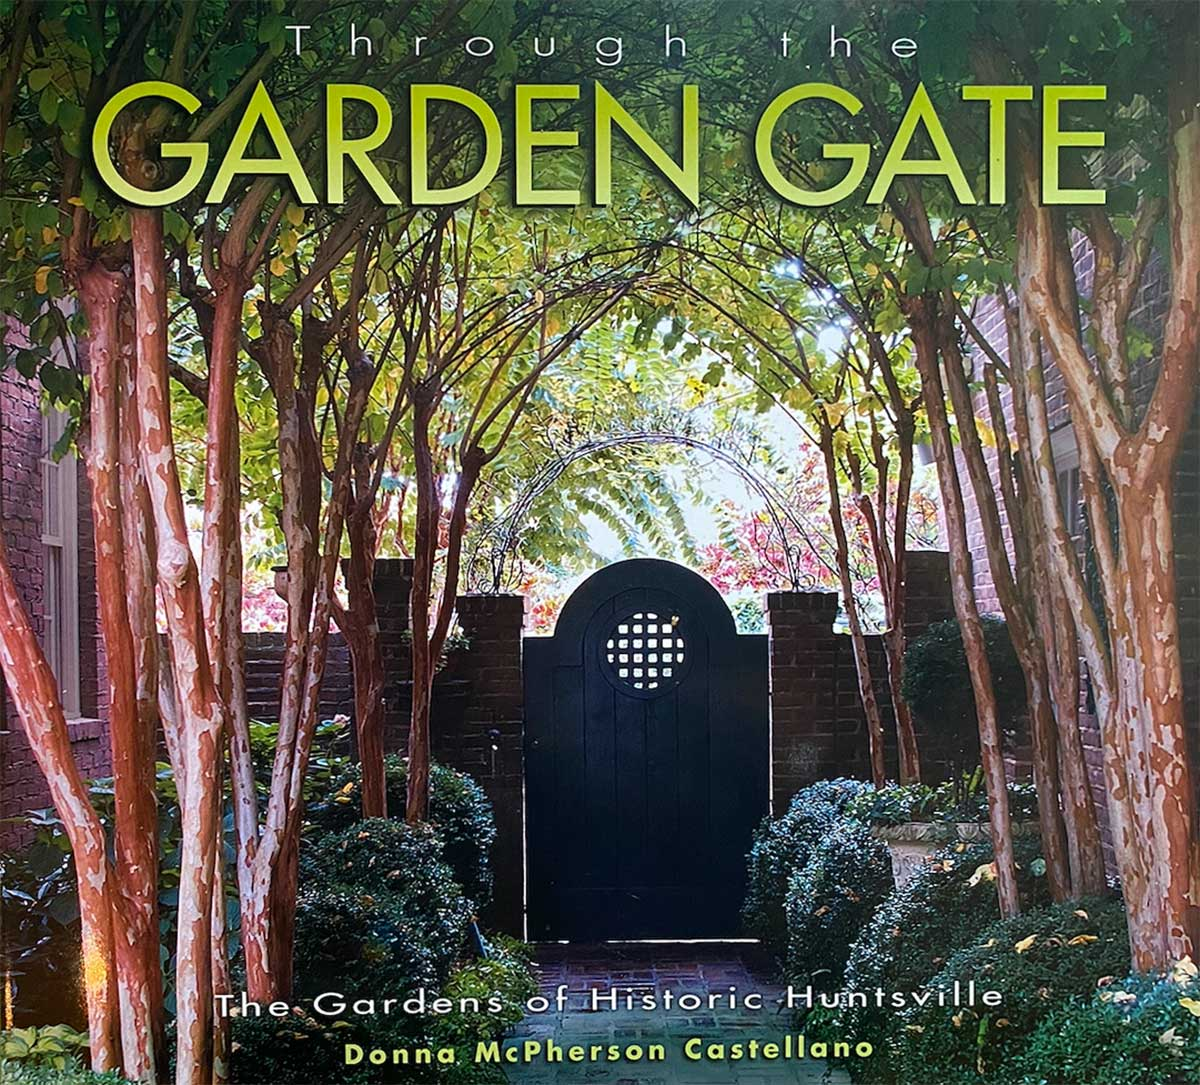 Order Through the Garden Gate